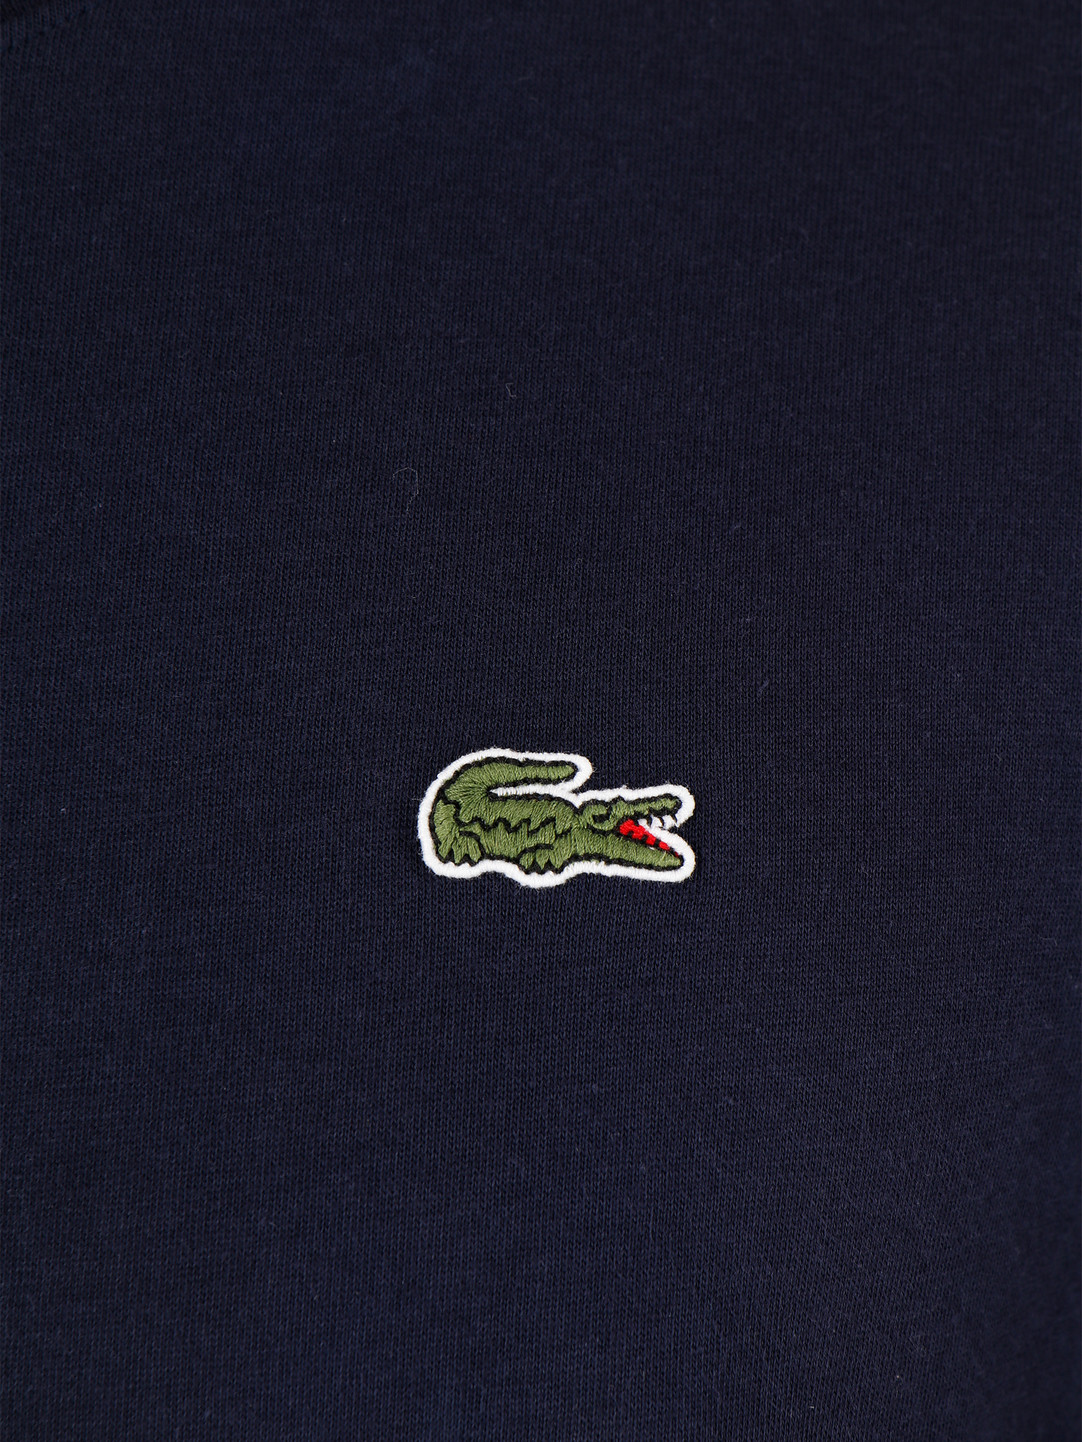 Lacoste Lacoste 1HT1 T-Shirt 06A Marine Th7618-83